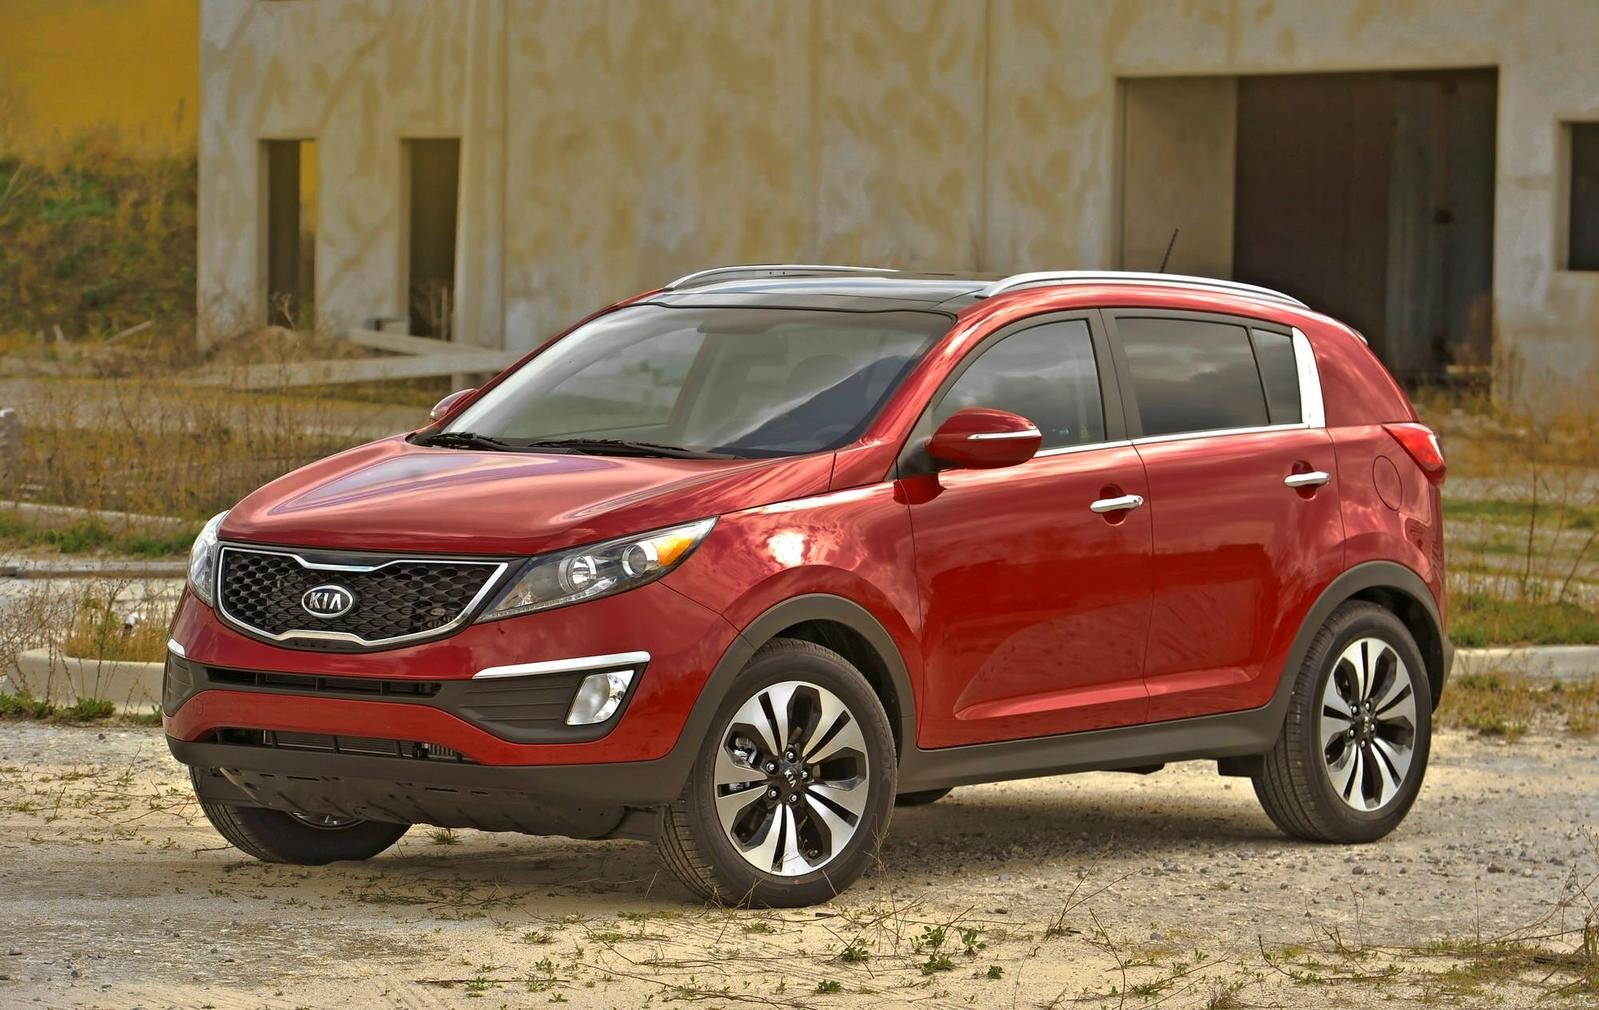 2011 kia sportage sx turbo picture 395166 car review. Black Bedroom Furniture Sets. Home Design Ideas